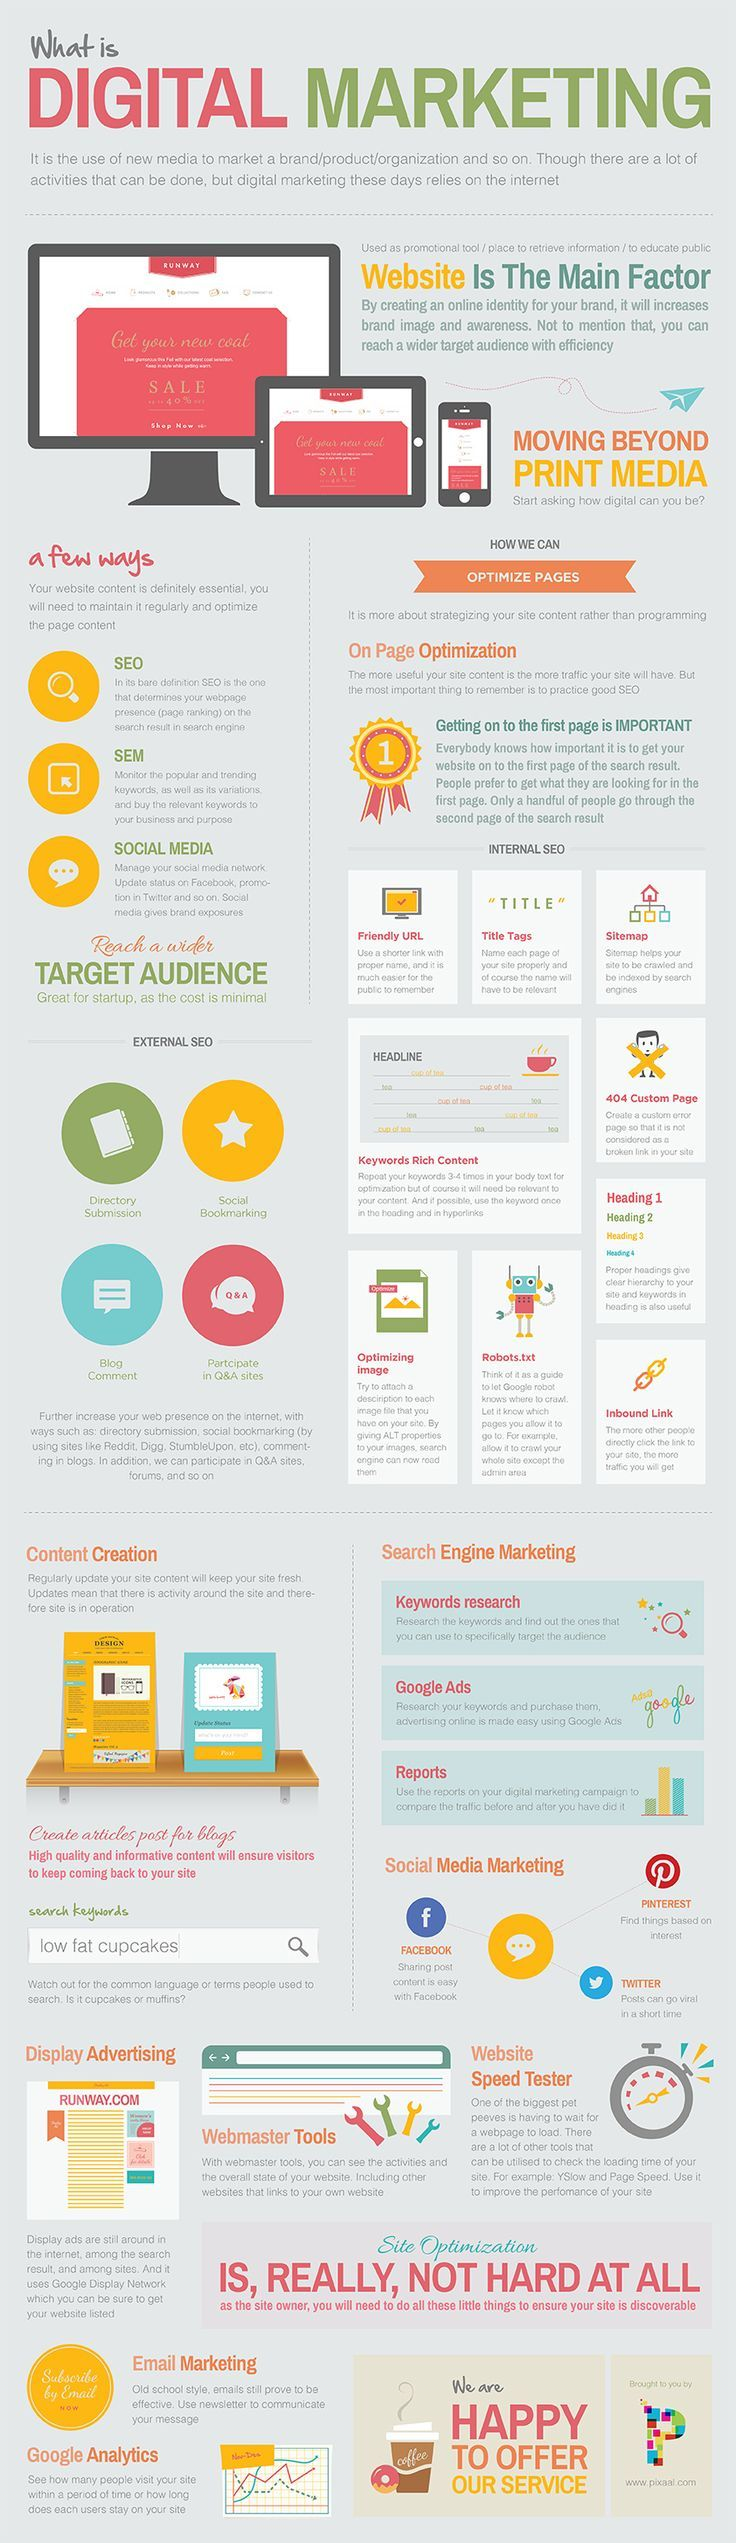 A little guide to digital marketing!